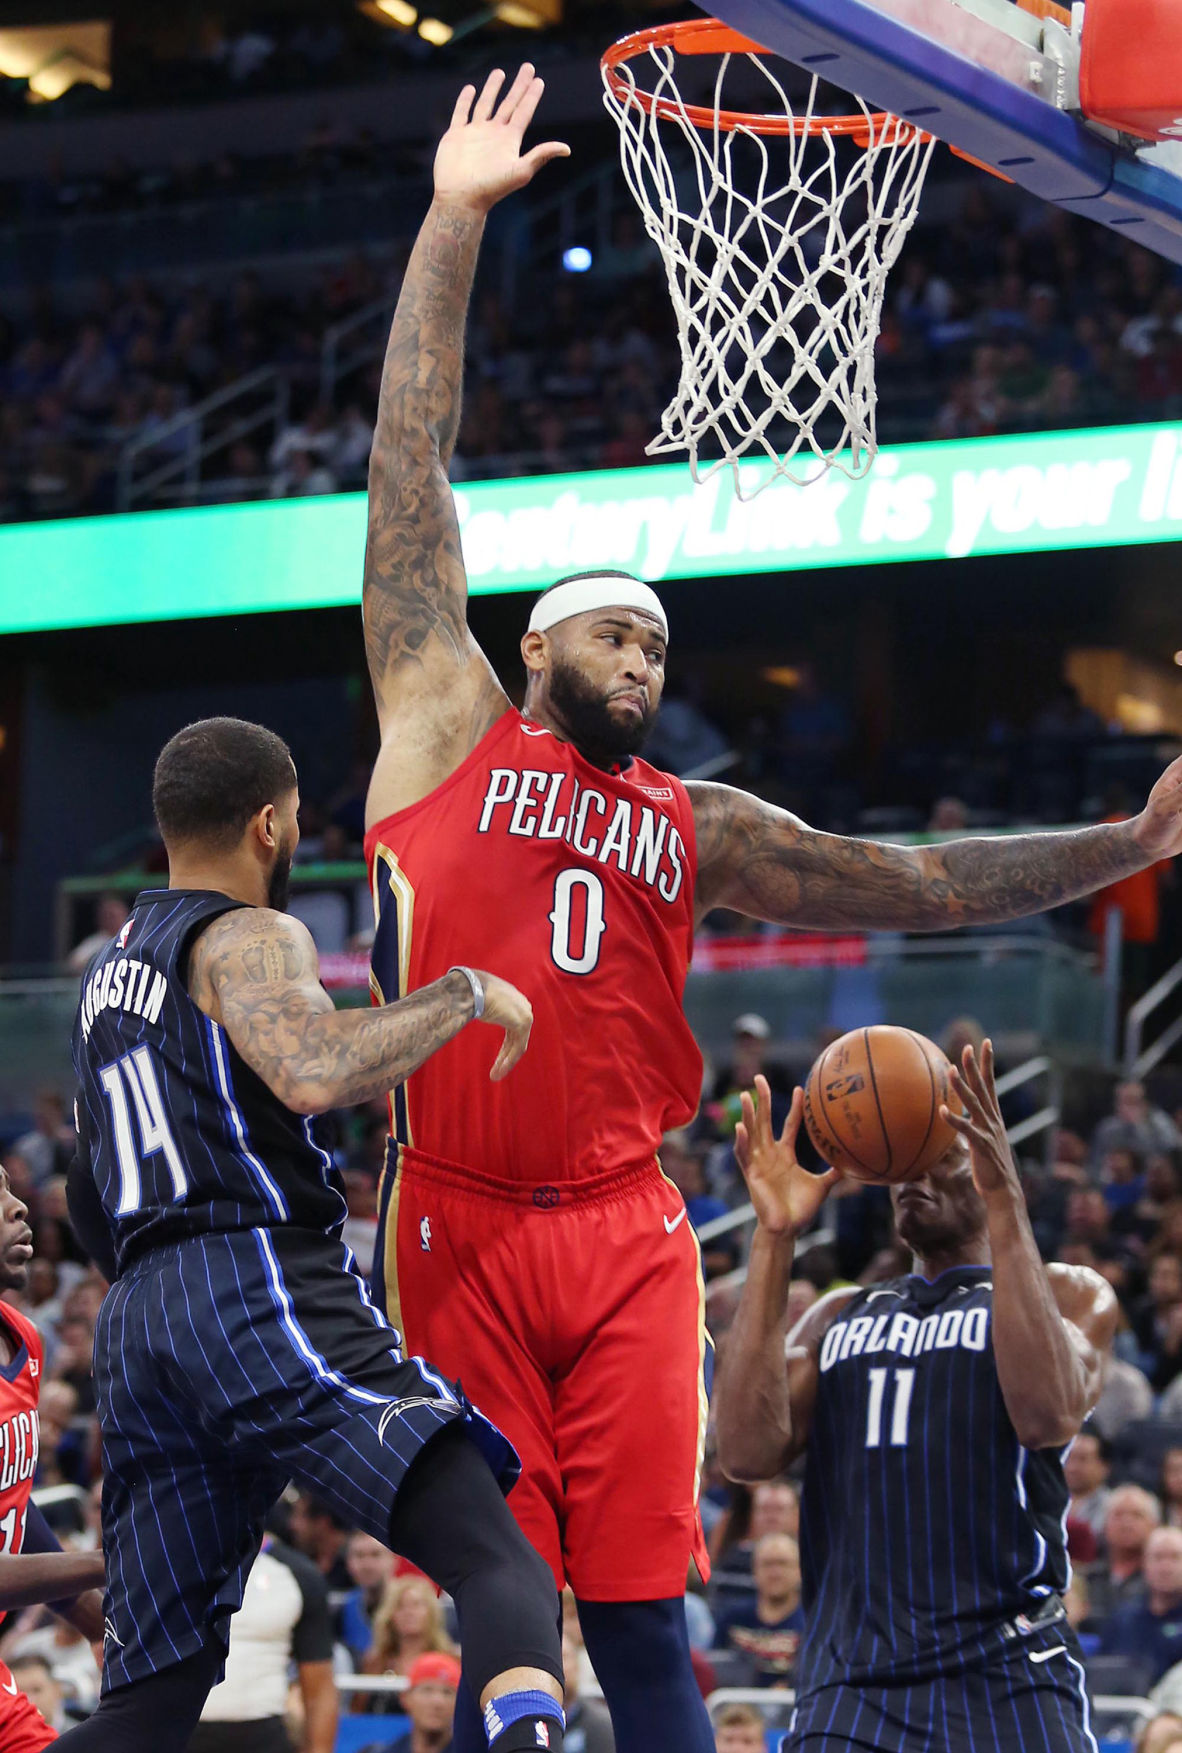 The New Orleans Pelicans' DeMarcus Cousins (0) leaps over the Orlando Magic's D.J. Augustin (14) and Bismack Biyombo (11) at the Amway Center in Orlando, Fla., on December 22, 2017.